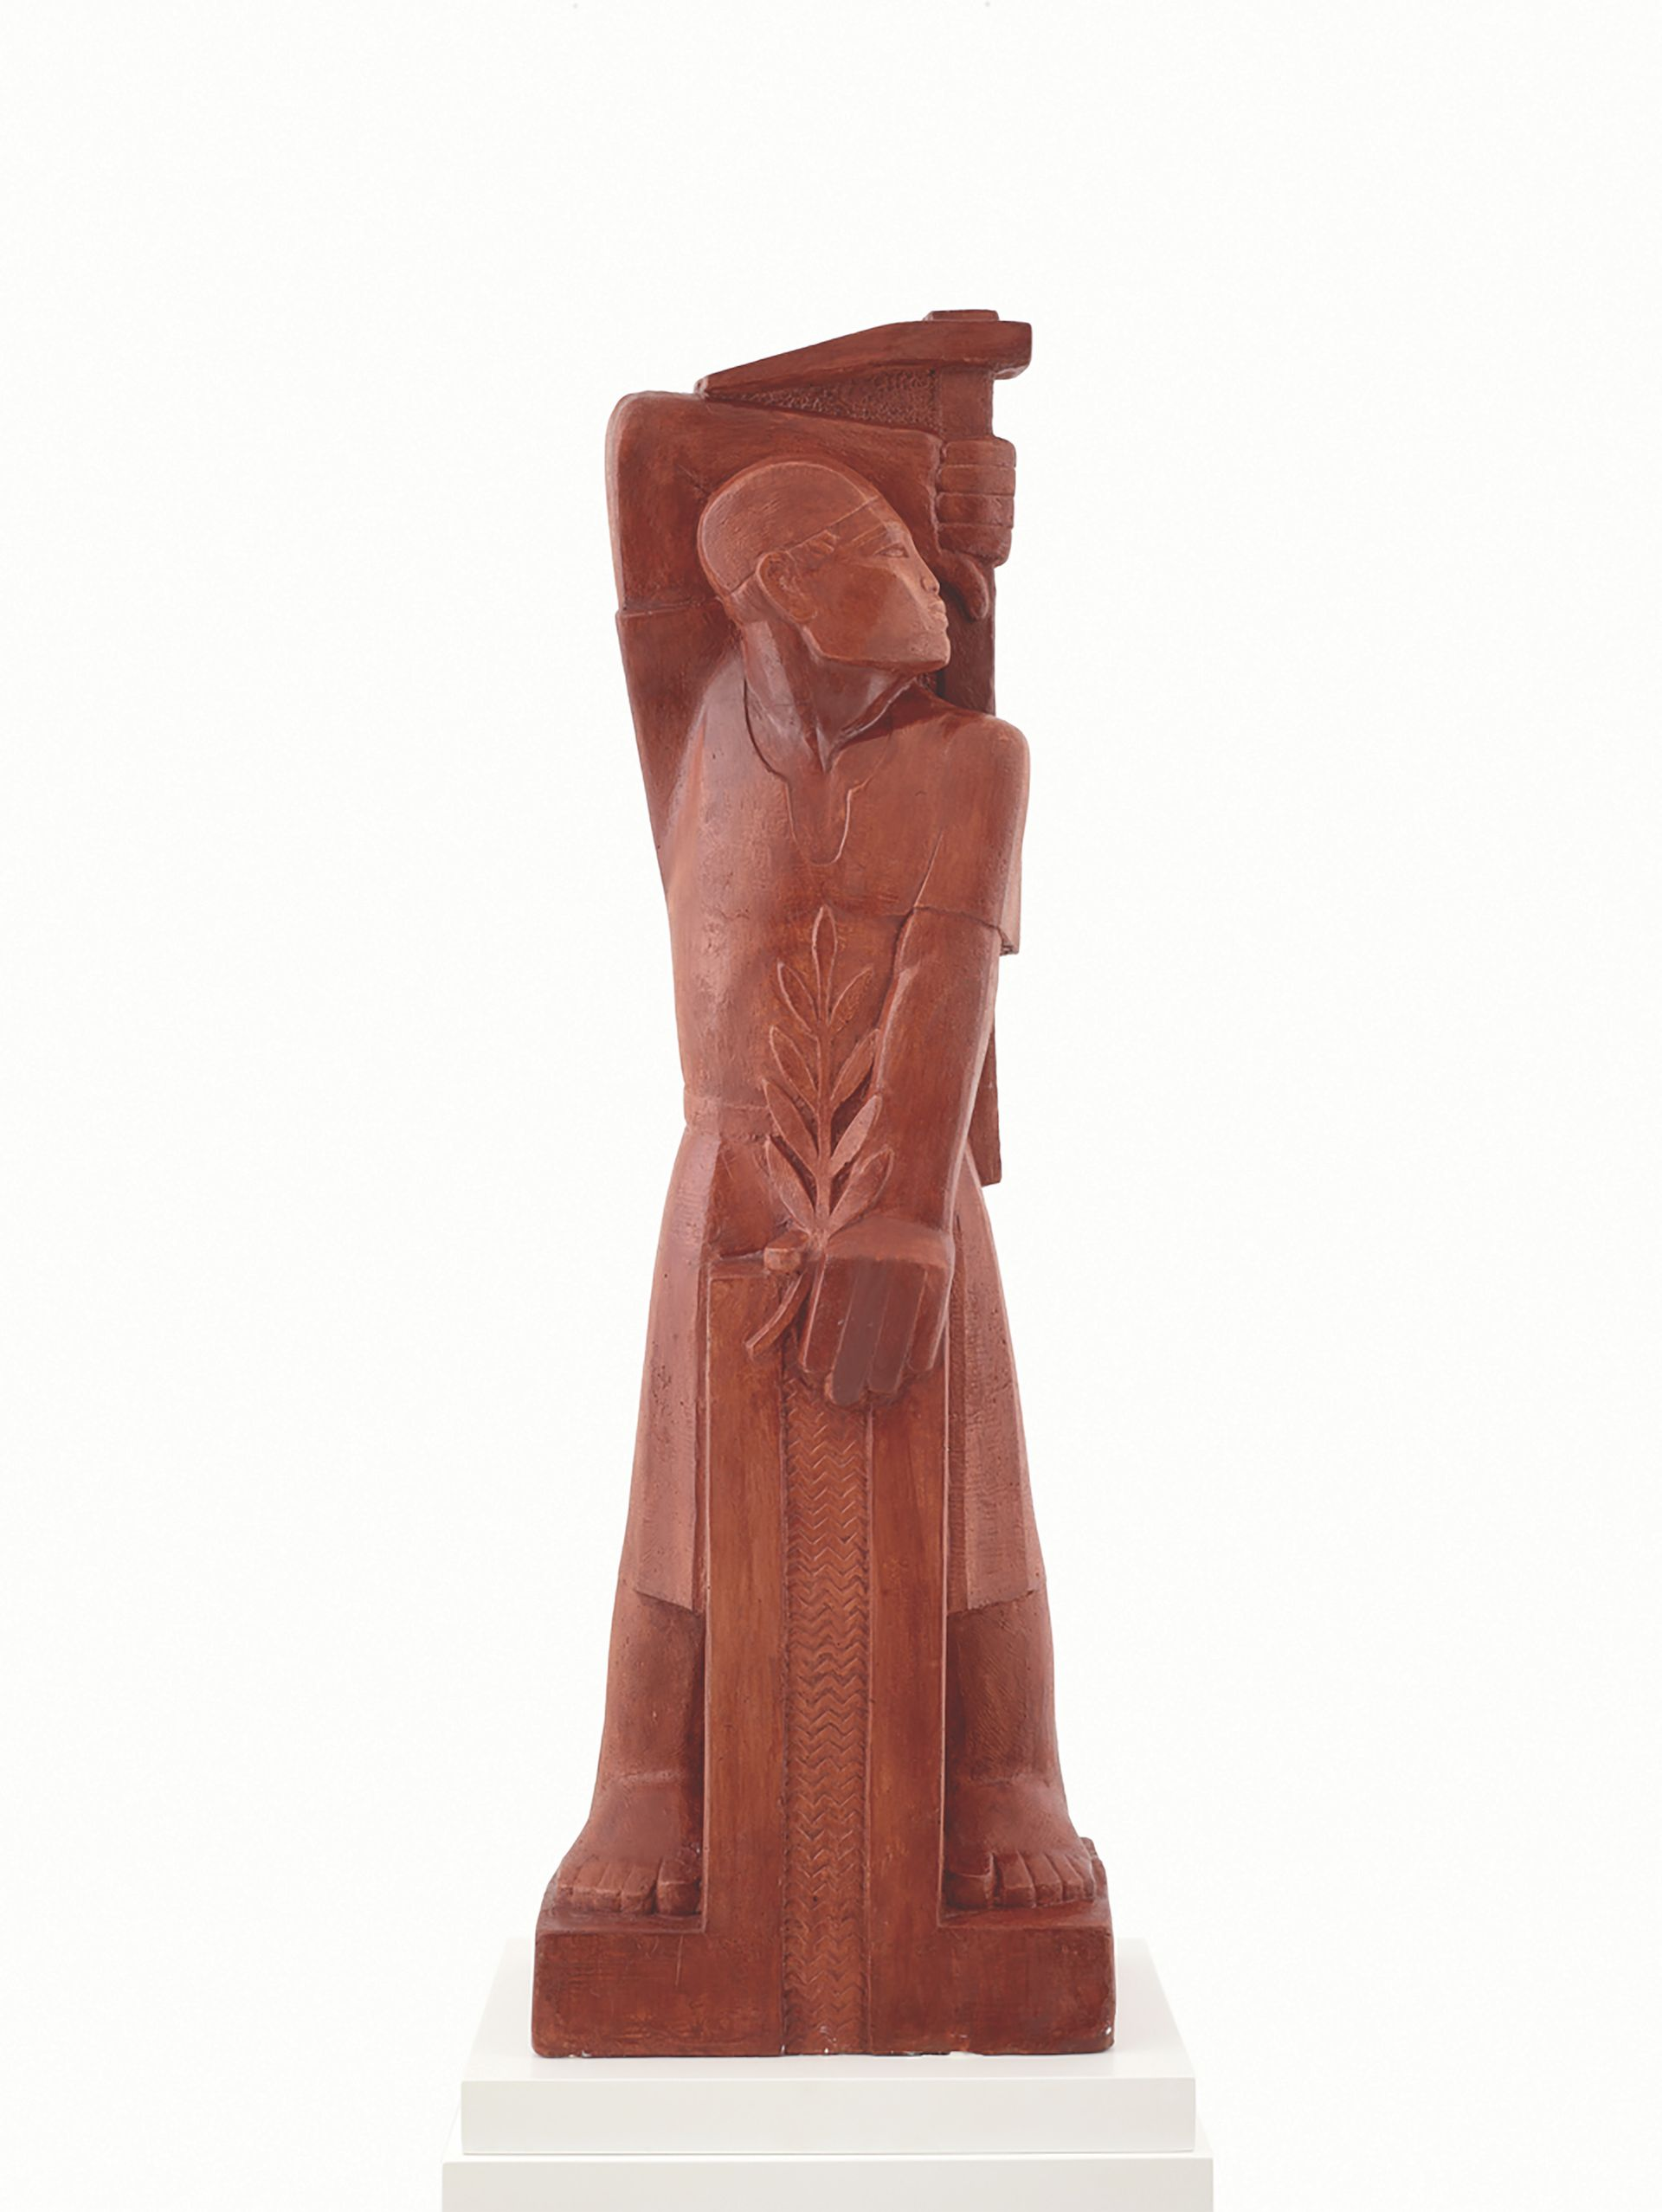 The Worker, bought by Ramzi Dalloul from Bonhams in 2015 as a work by Mahmoud Moussa. The auctioneer has now refunded his money following doubts over the work's authenticity